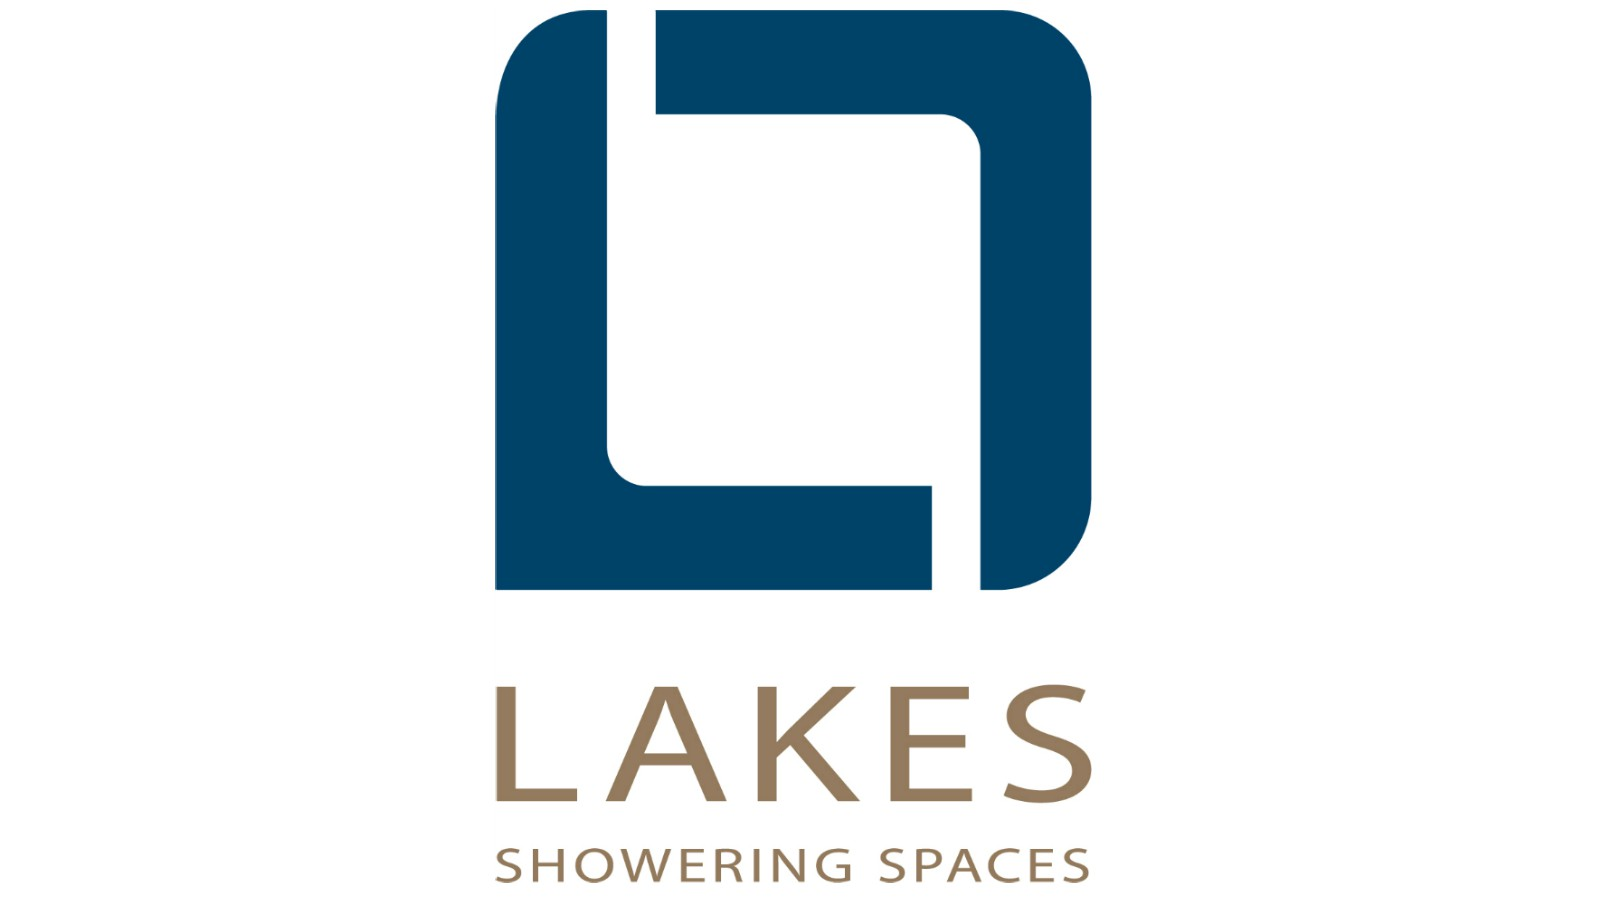 Lakes Bathrooms rebrands business